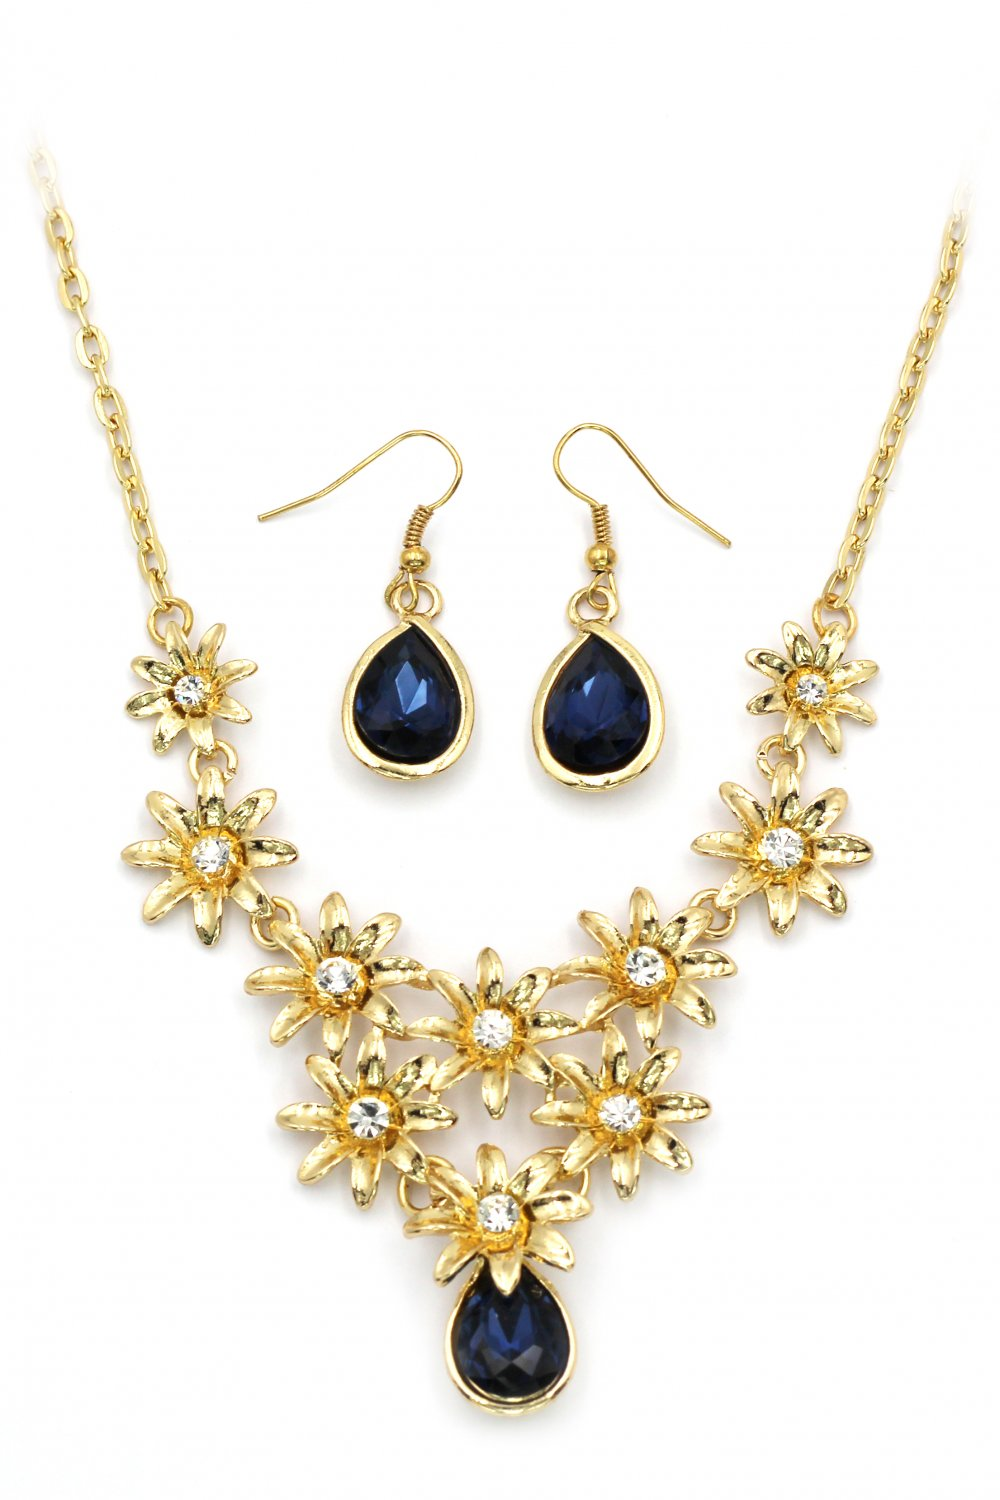 Brilliant golden flower blue crystal necklace earrings set